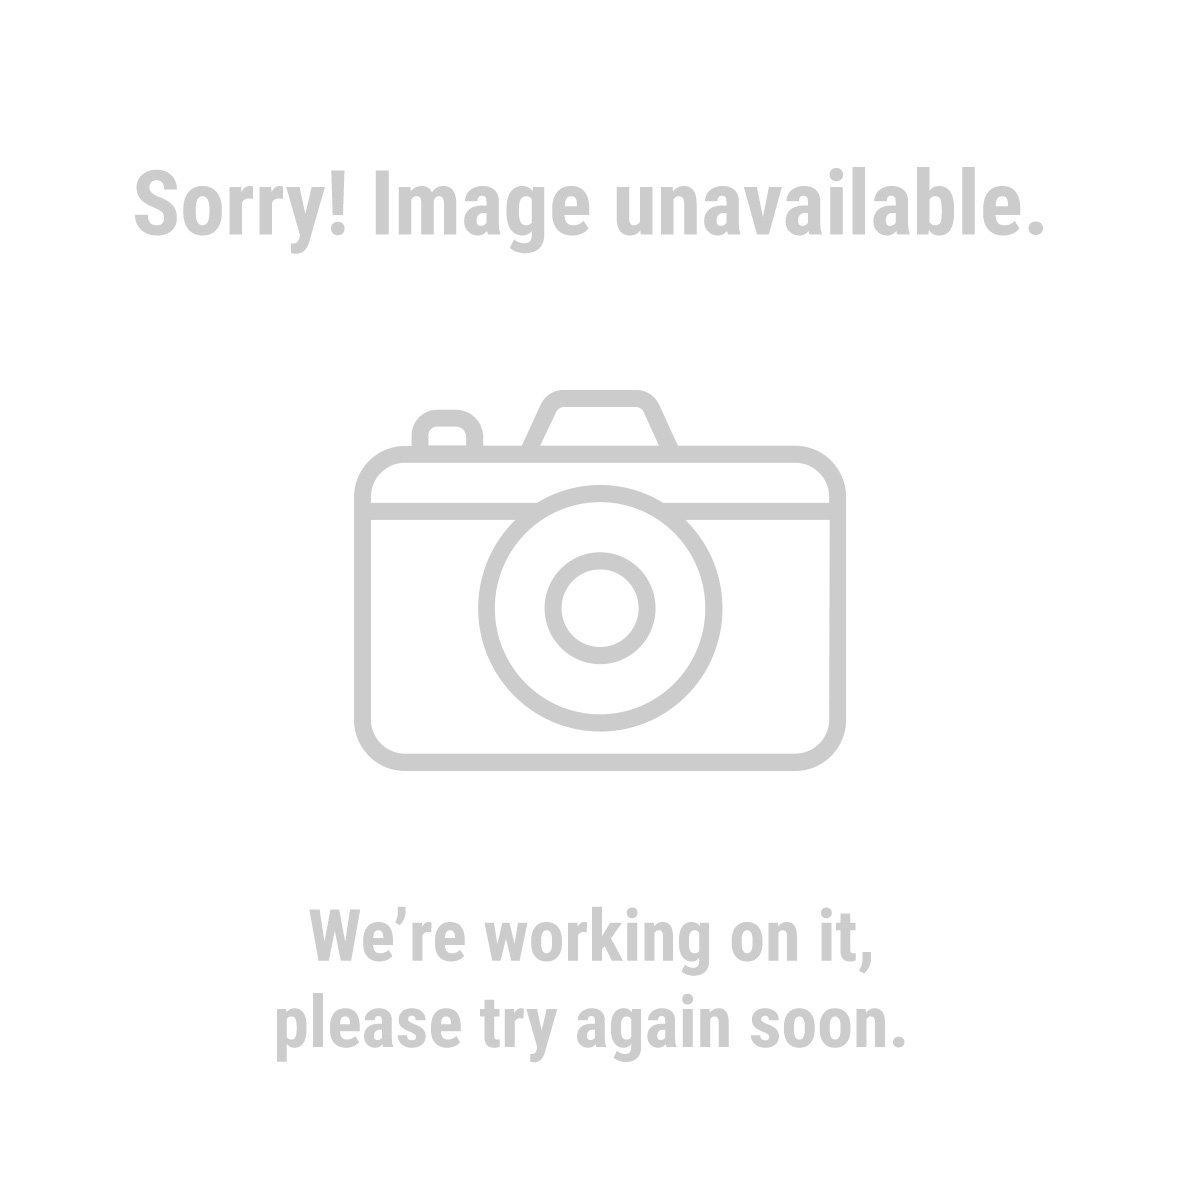 Greyhound 62365 Towable Ride-On Trencher